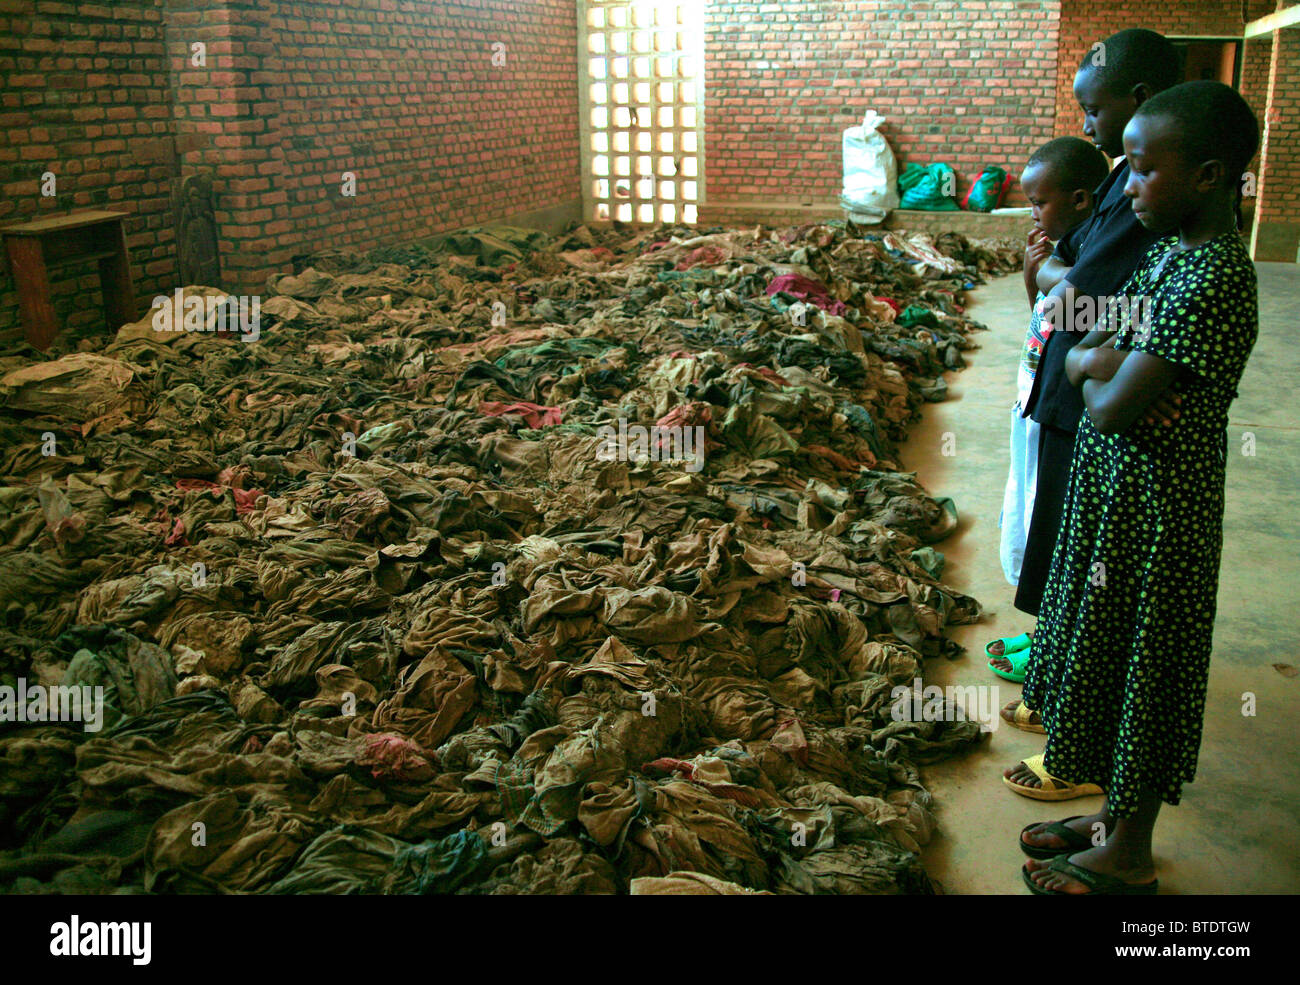 Children standing in a church in rural Rwanda and looking at remains opeople killed during the 1994 genocide - Stock Image